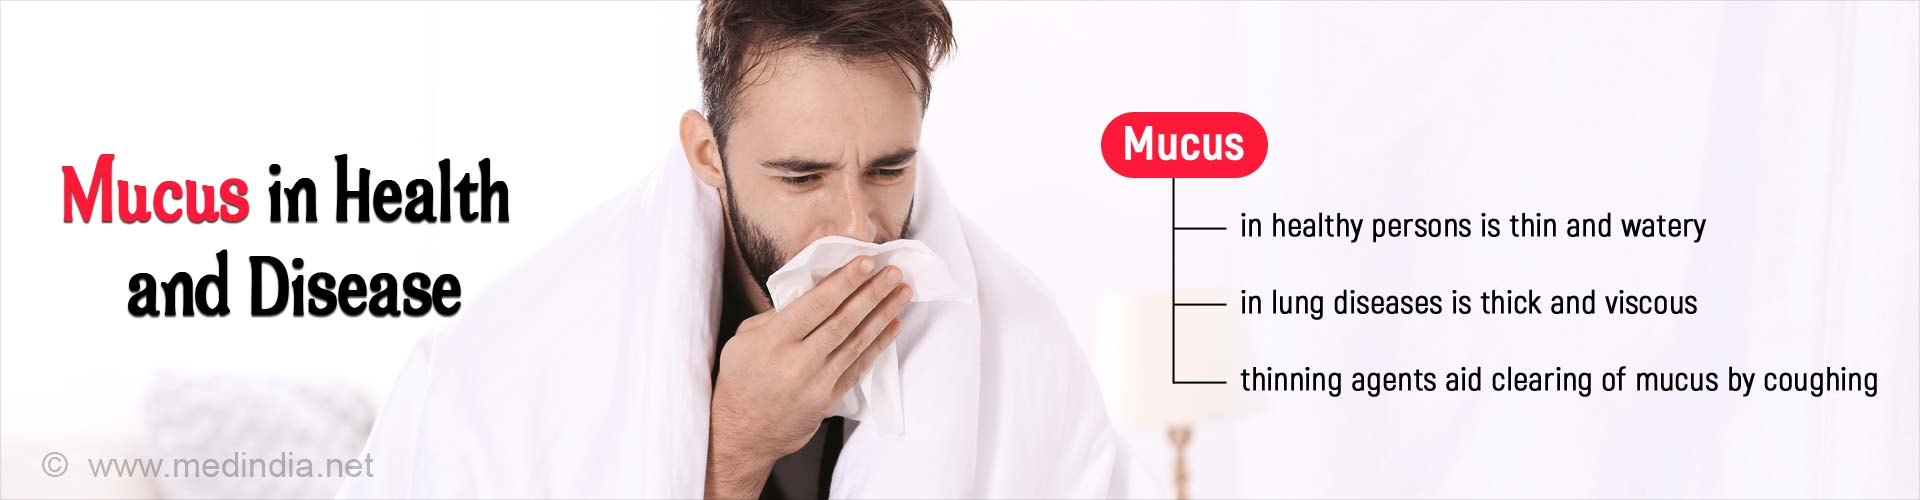 Coughing Unable to Bring Out Mucus in Cystic Fibrosis: Here''s Why